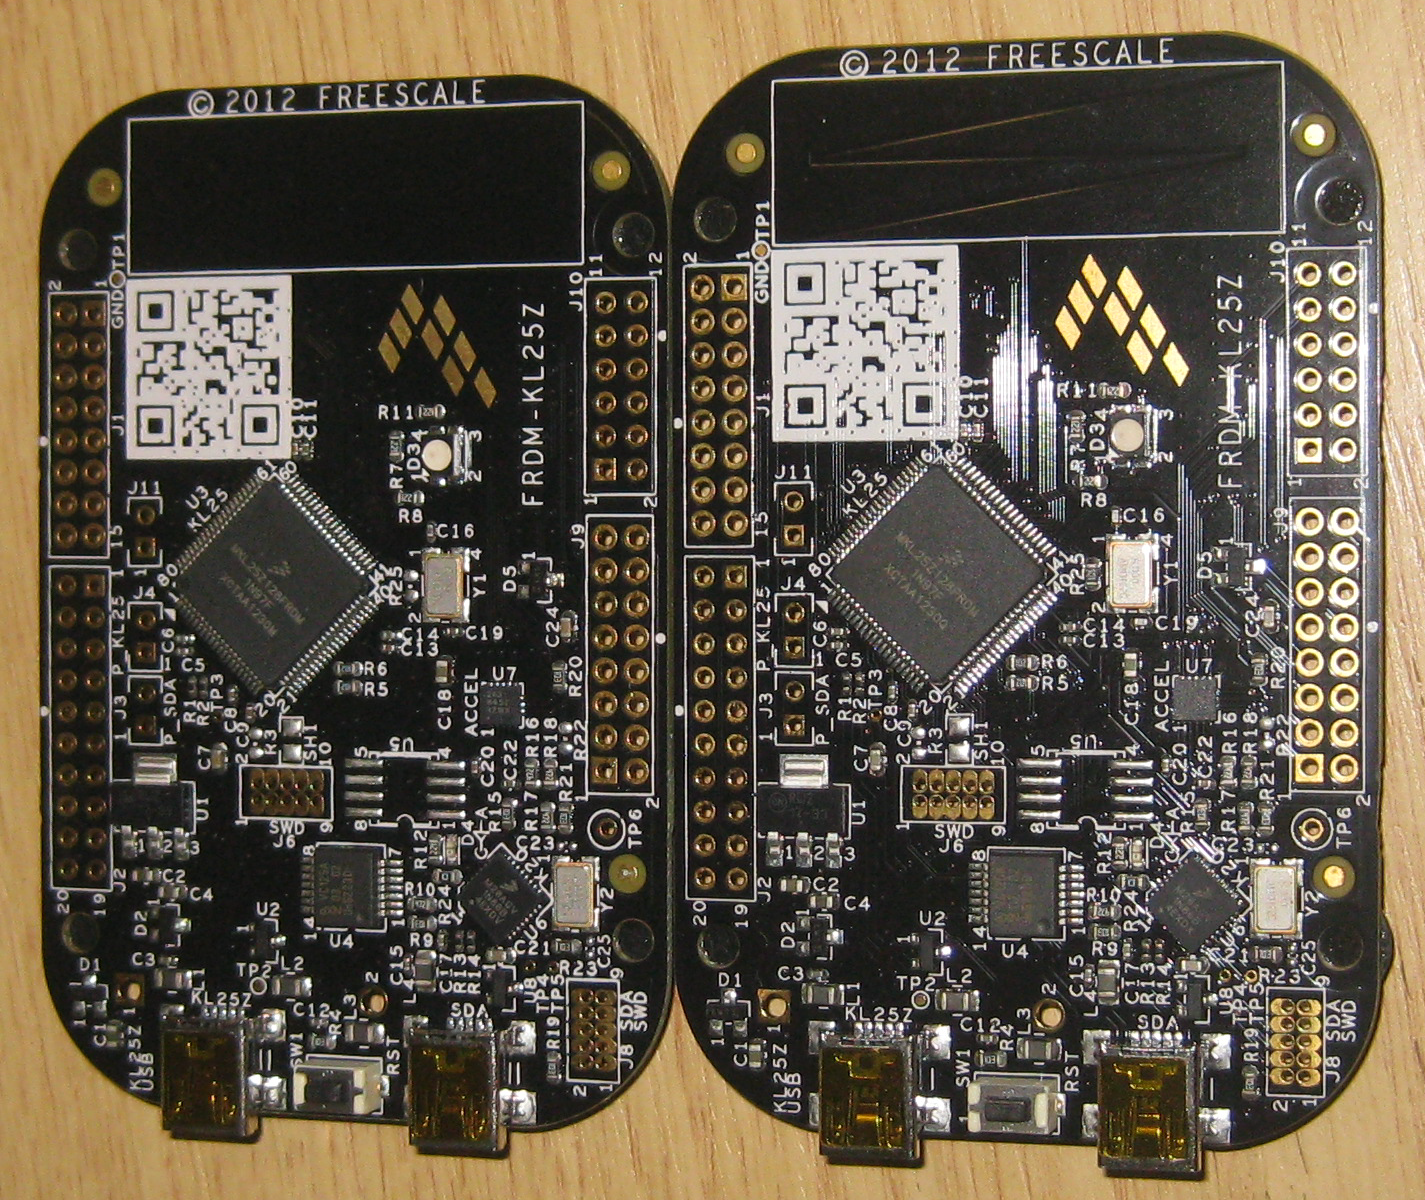 Using The 8 Mhz Crystal On Frdm Kl25z Freedom Board Mcu Eclipse Of Test Boards Used To Createthe Crystaloscillator Circuit Can You Spot Difference